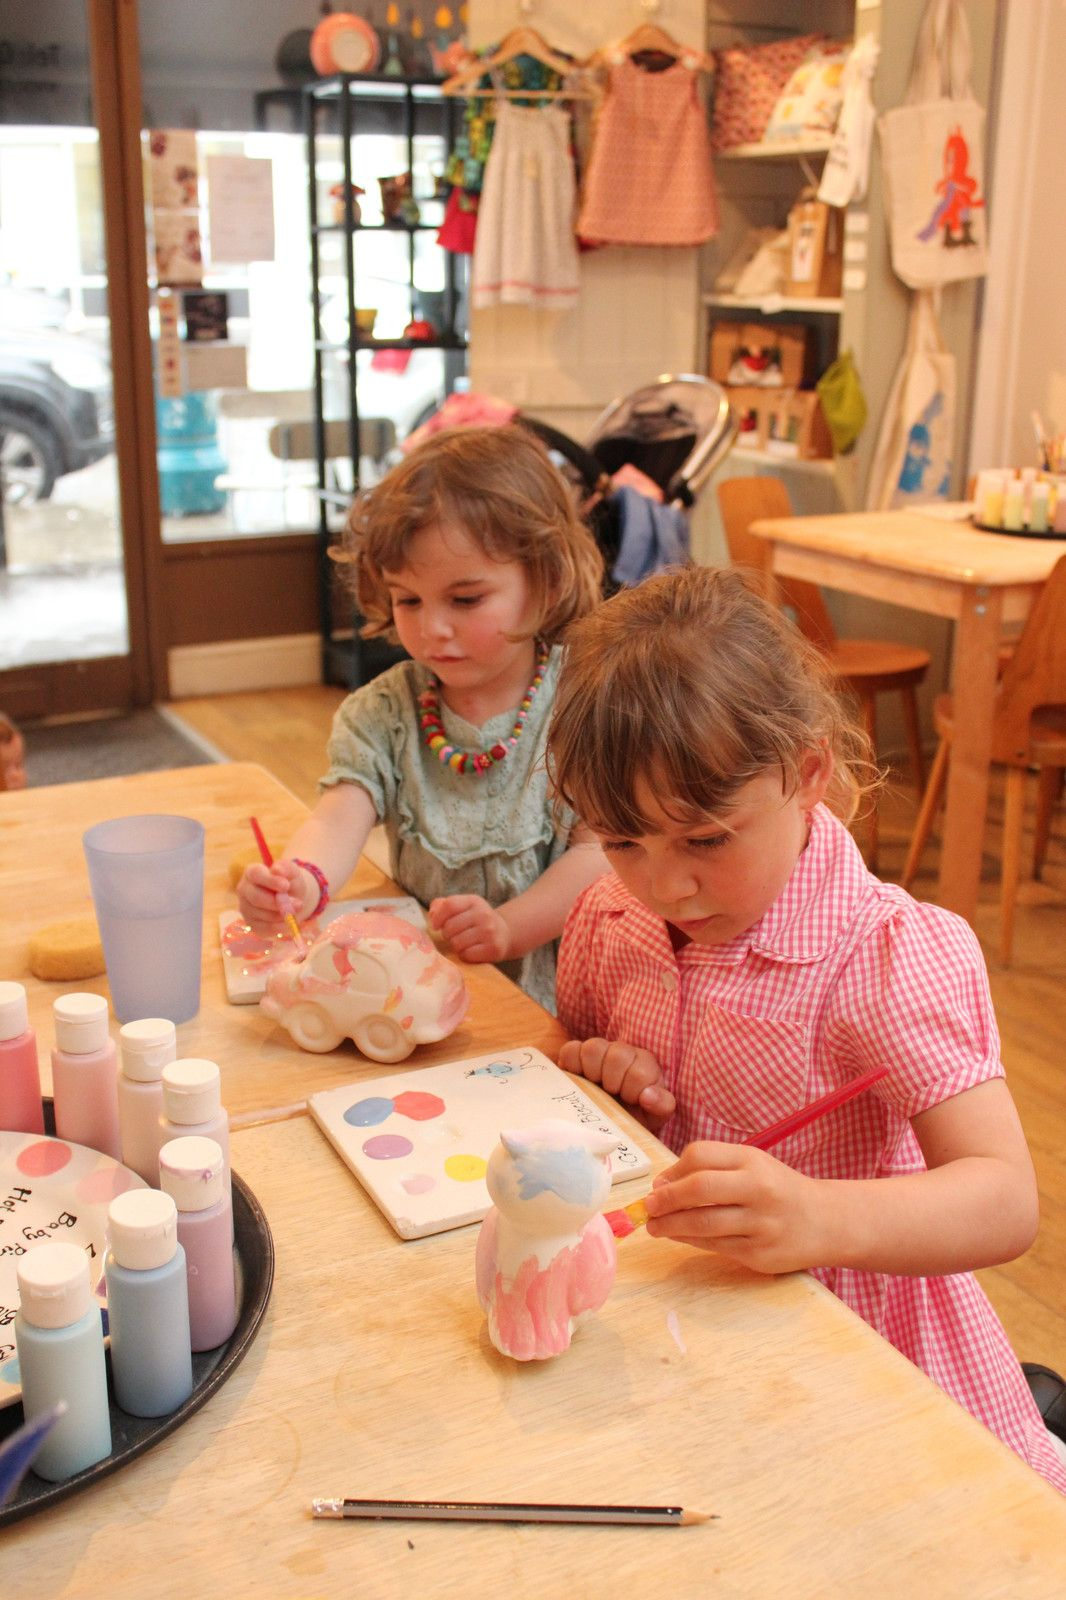 Pottery painting at Creative Biscuit Ceramics Cafe #ceramiccafe